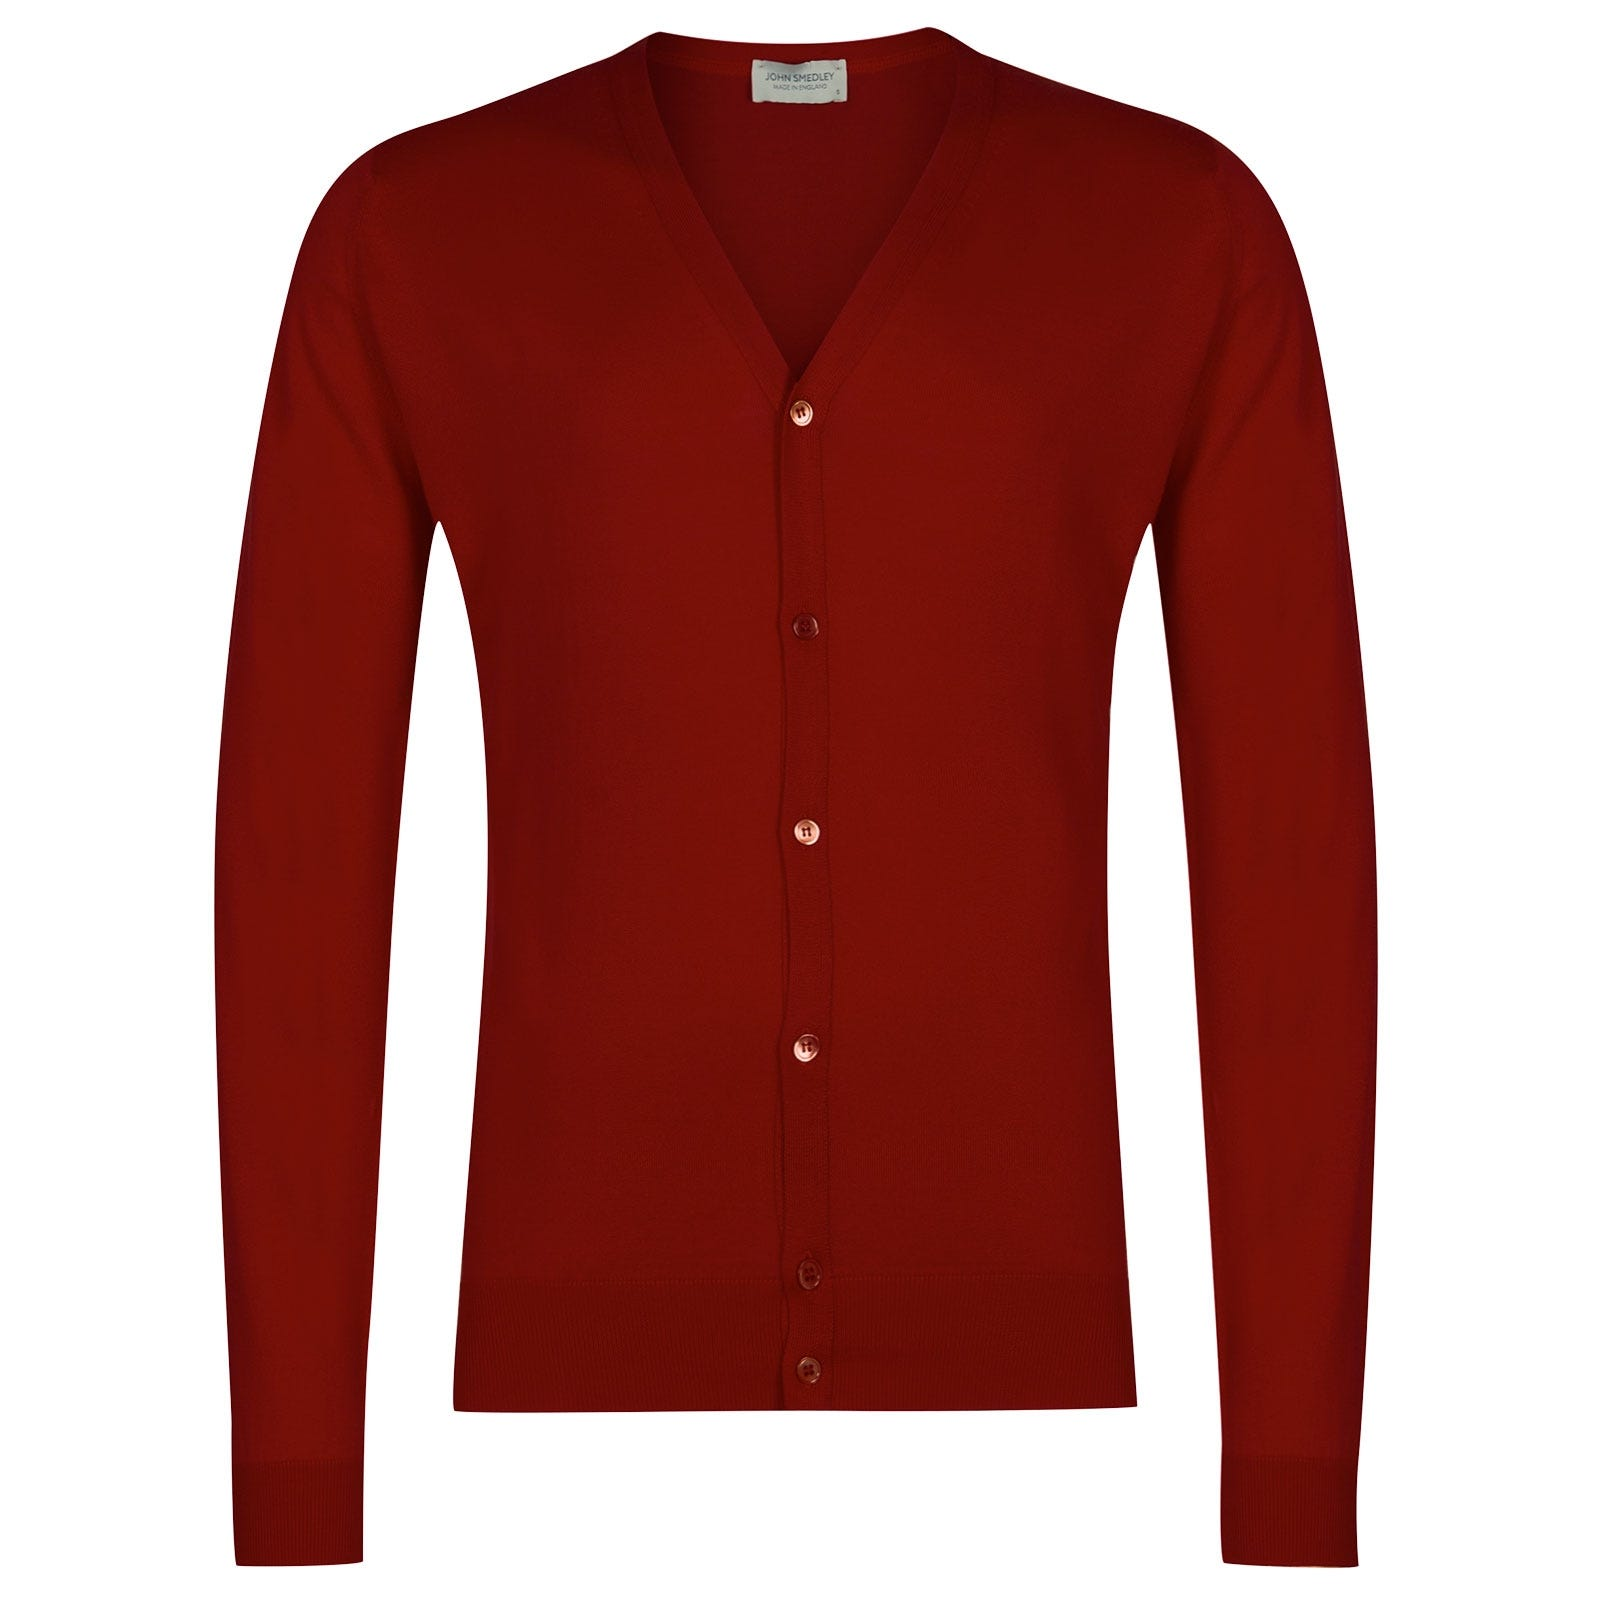 John Smedley Whitchurch Sea Island Cotton Cardigan in Thermal Red-S